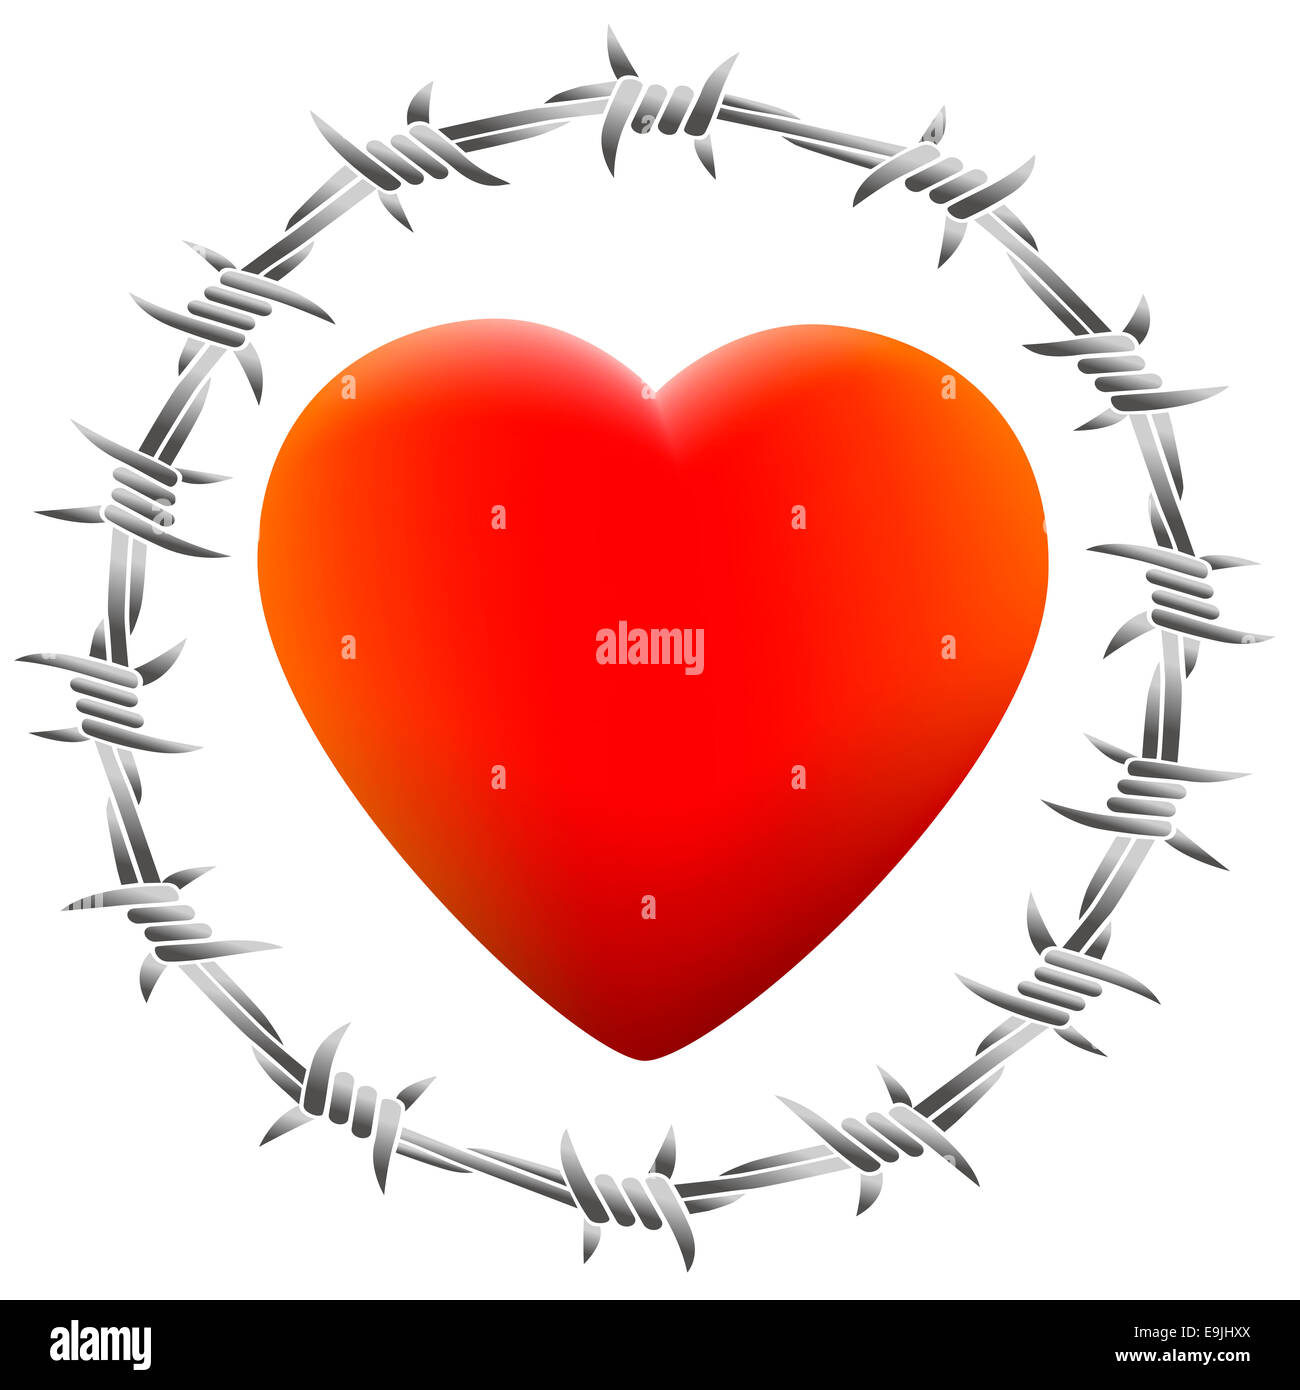 Red glowing heart surrounded by barbed wire. Stock Photo